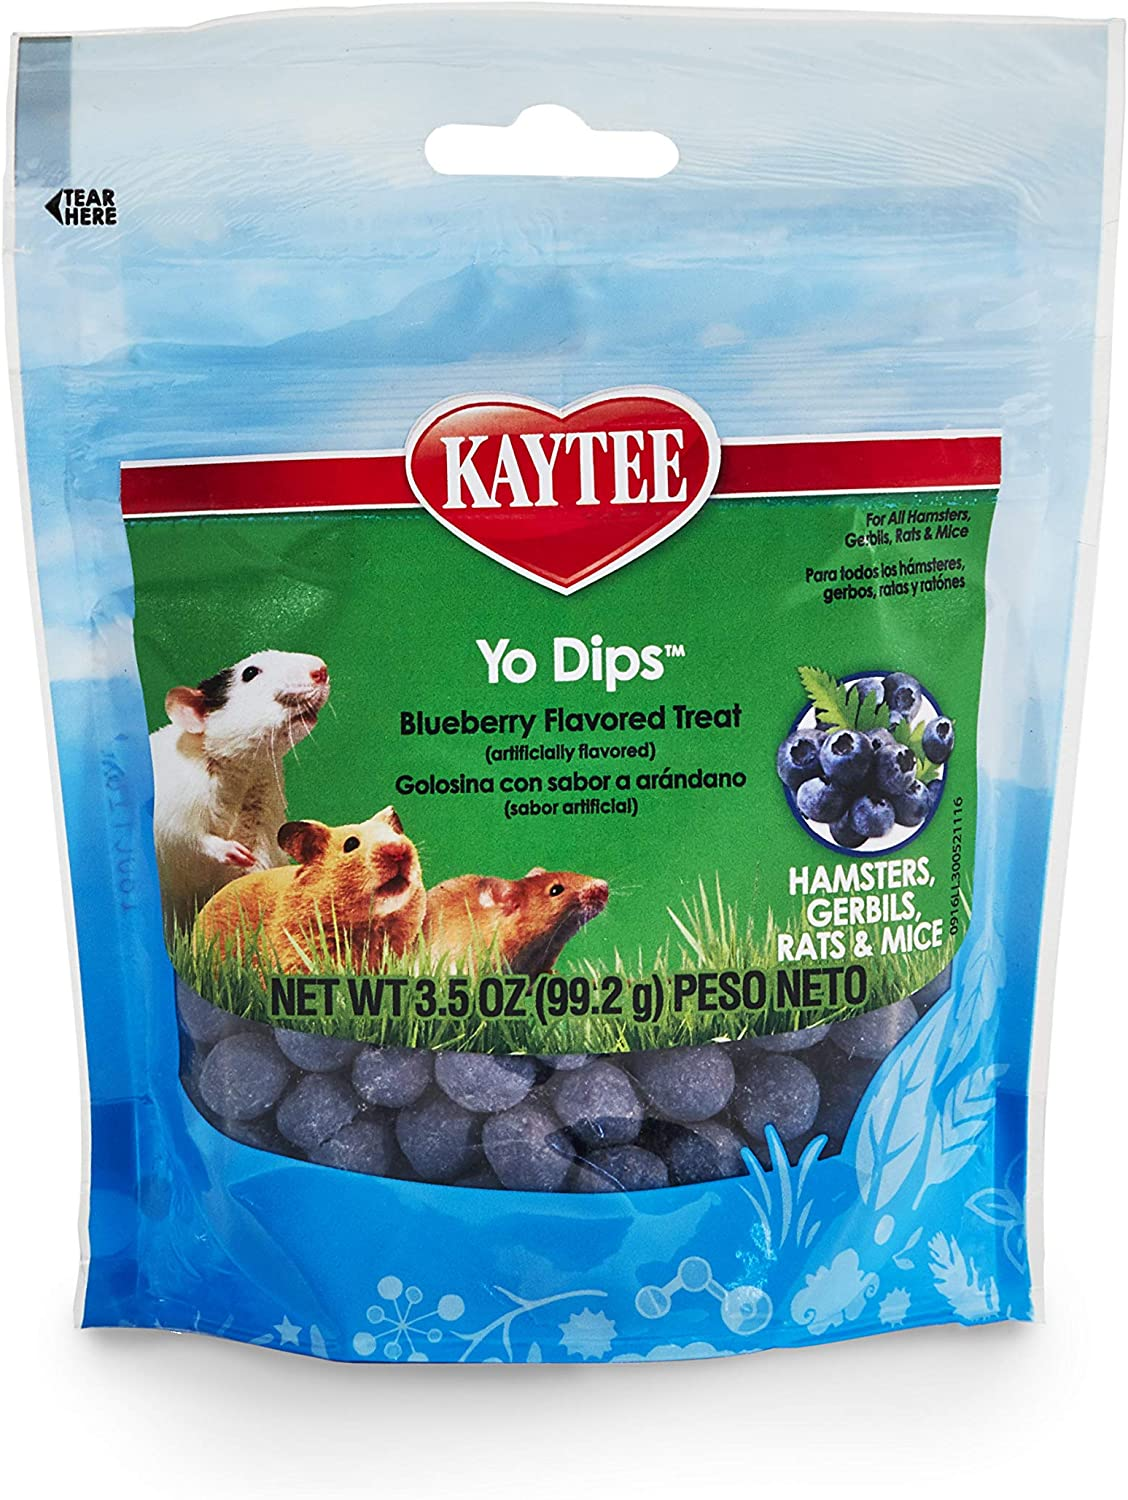 Kaytee Blueberry Flavored Ygurt Dipped Hamsters And Gerbil Treat